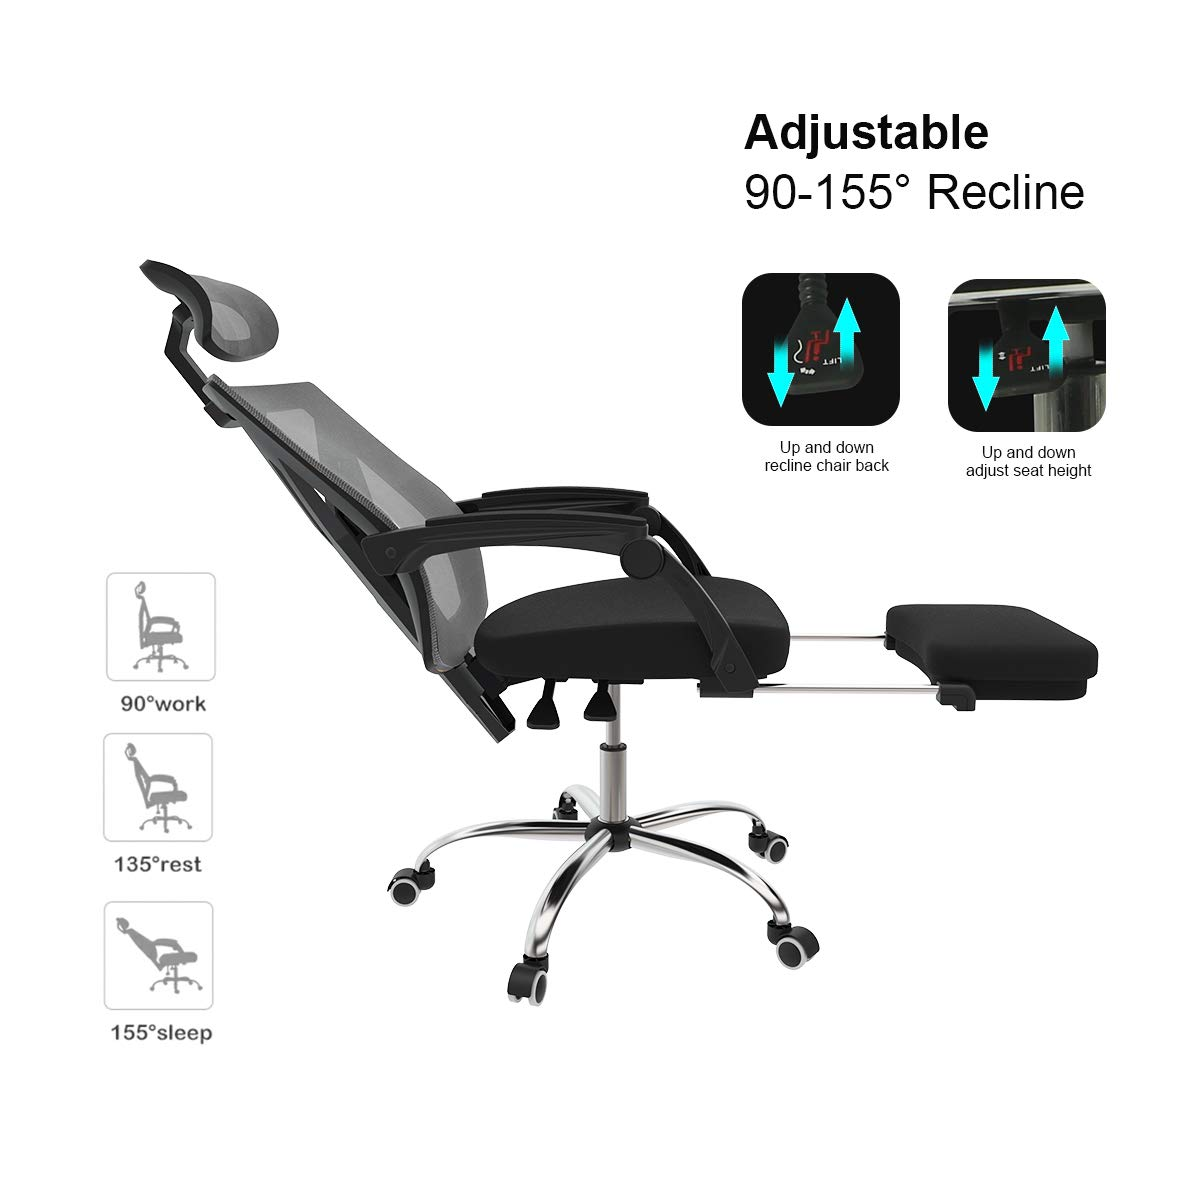 Hbada Ergonomic Office Recliner Chair - High-Back Desk Chair Racing Style with Lumbar Support - Height Adjustable Seat, Headrest- Breathable Mesh Back - Soft Foam Seat Cushion with Footrest, Black by Hbada (Image #8)